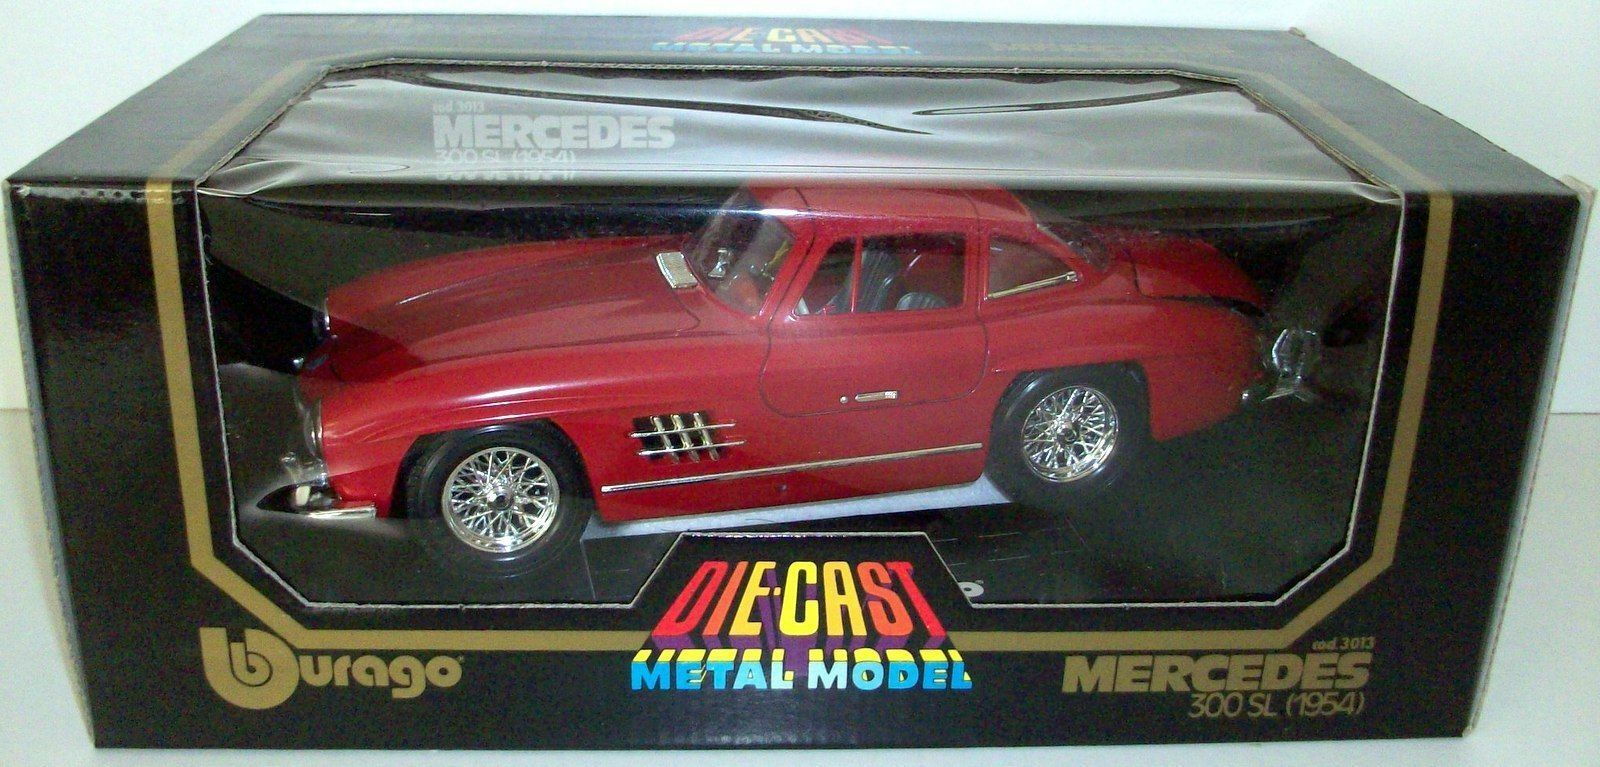 BURAGO 1 18 - COD. 3013 MERCEDES BENZ 300 SL 1954 - RED